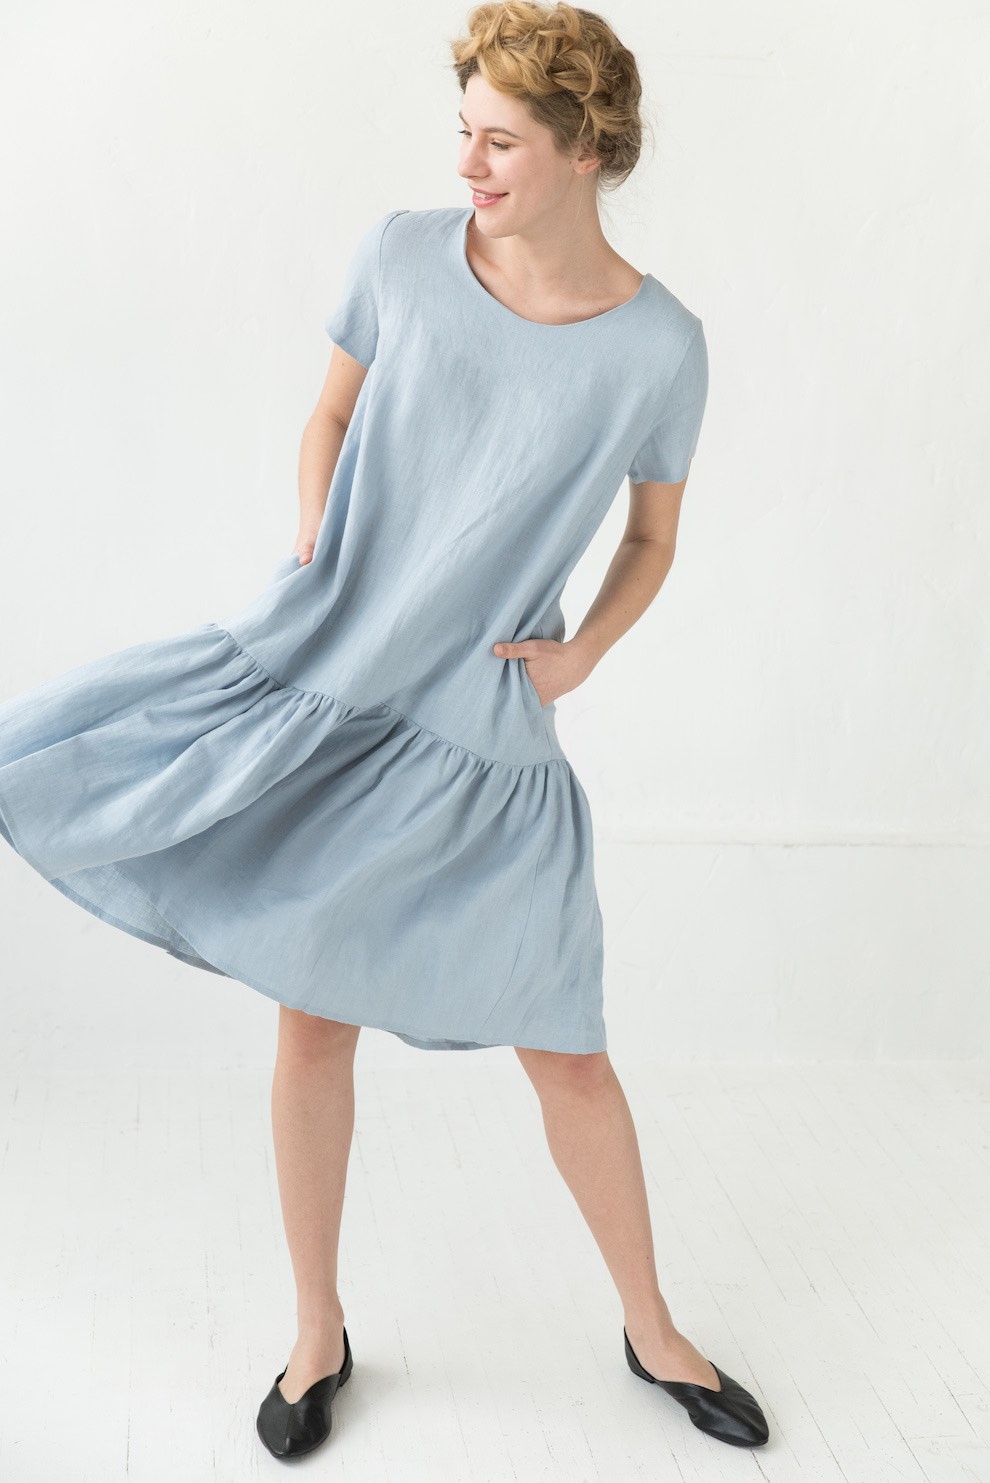 Linen ruffle dress in light blue BARCELONA